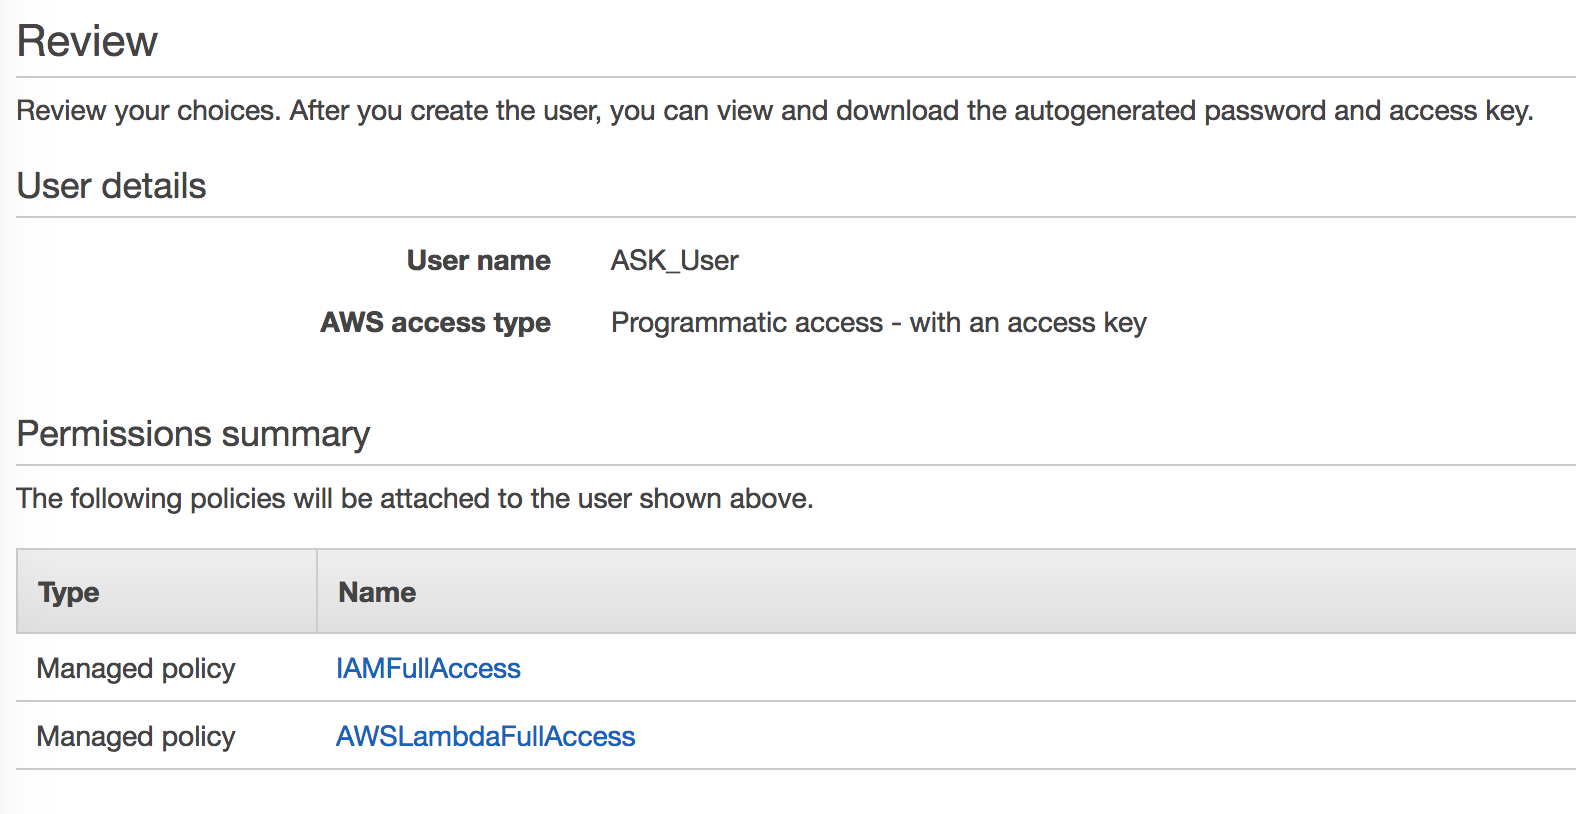 Review page summarizing the user details and permissions summar.y